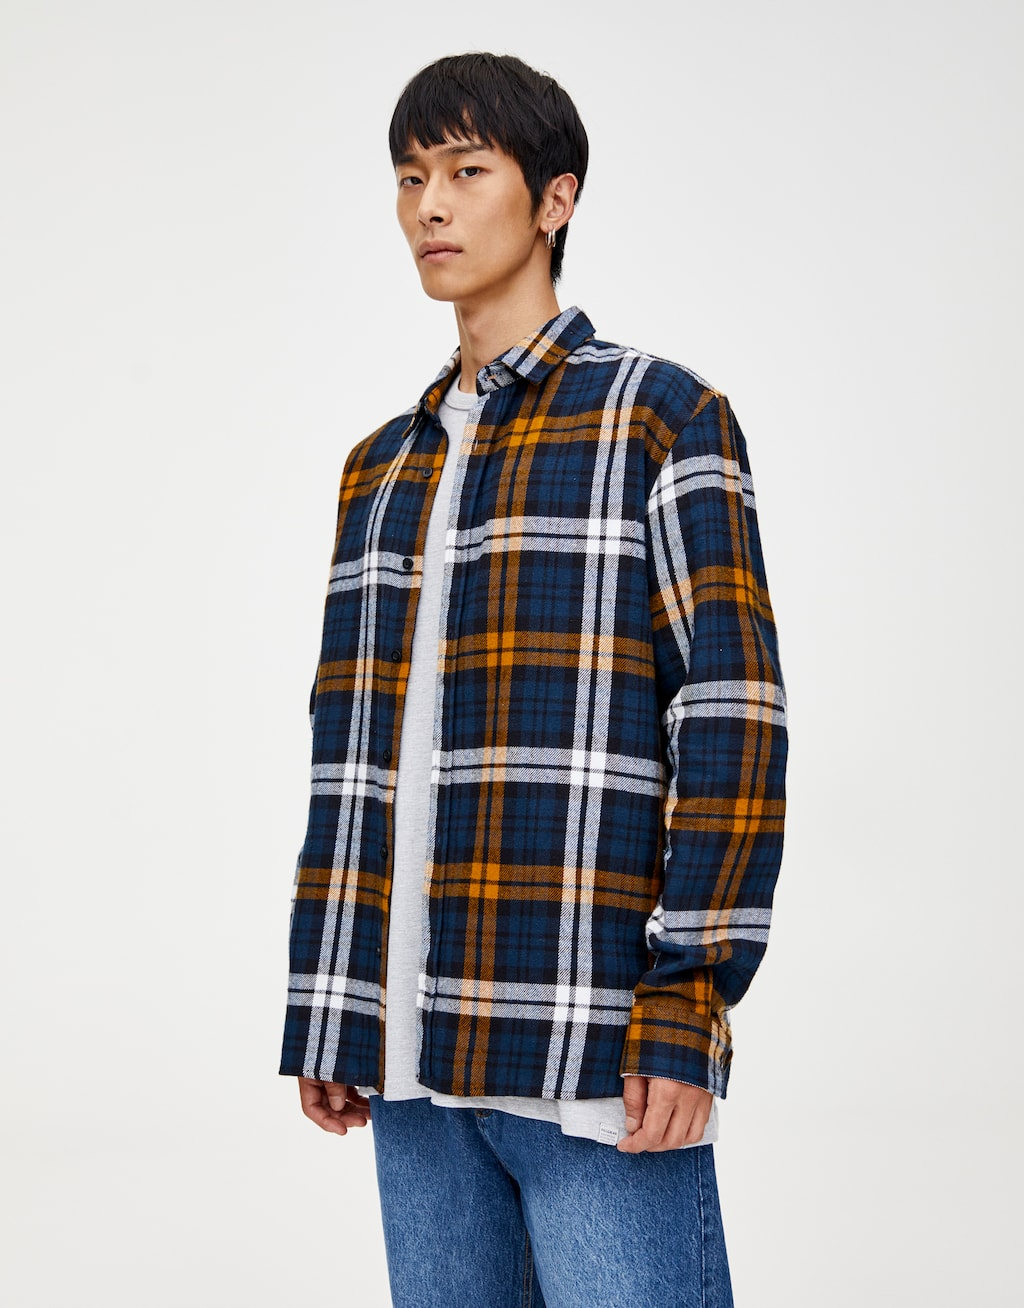 Chemise Carreaux Flanelle Manches Longues by Pull & Bear